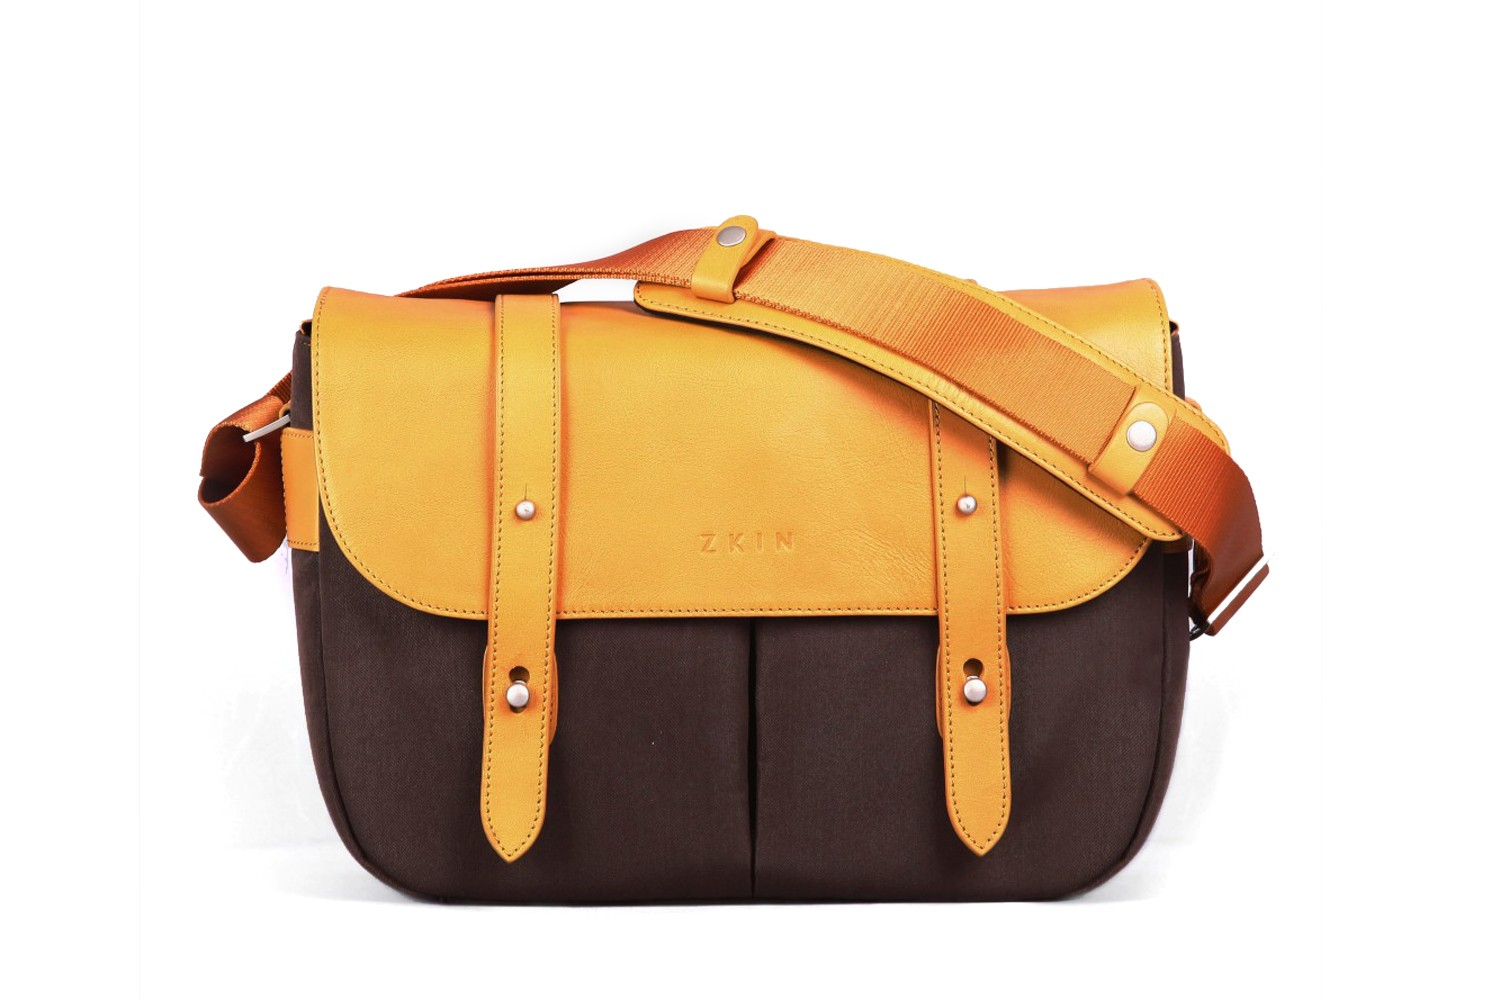 a6b2f1d71d4b Zkin Shoulder Bag - Champ (orange brown) · Lomography Shop